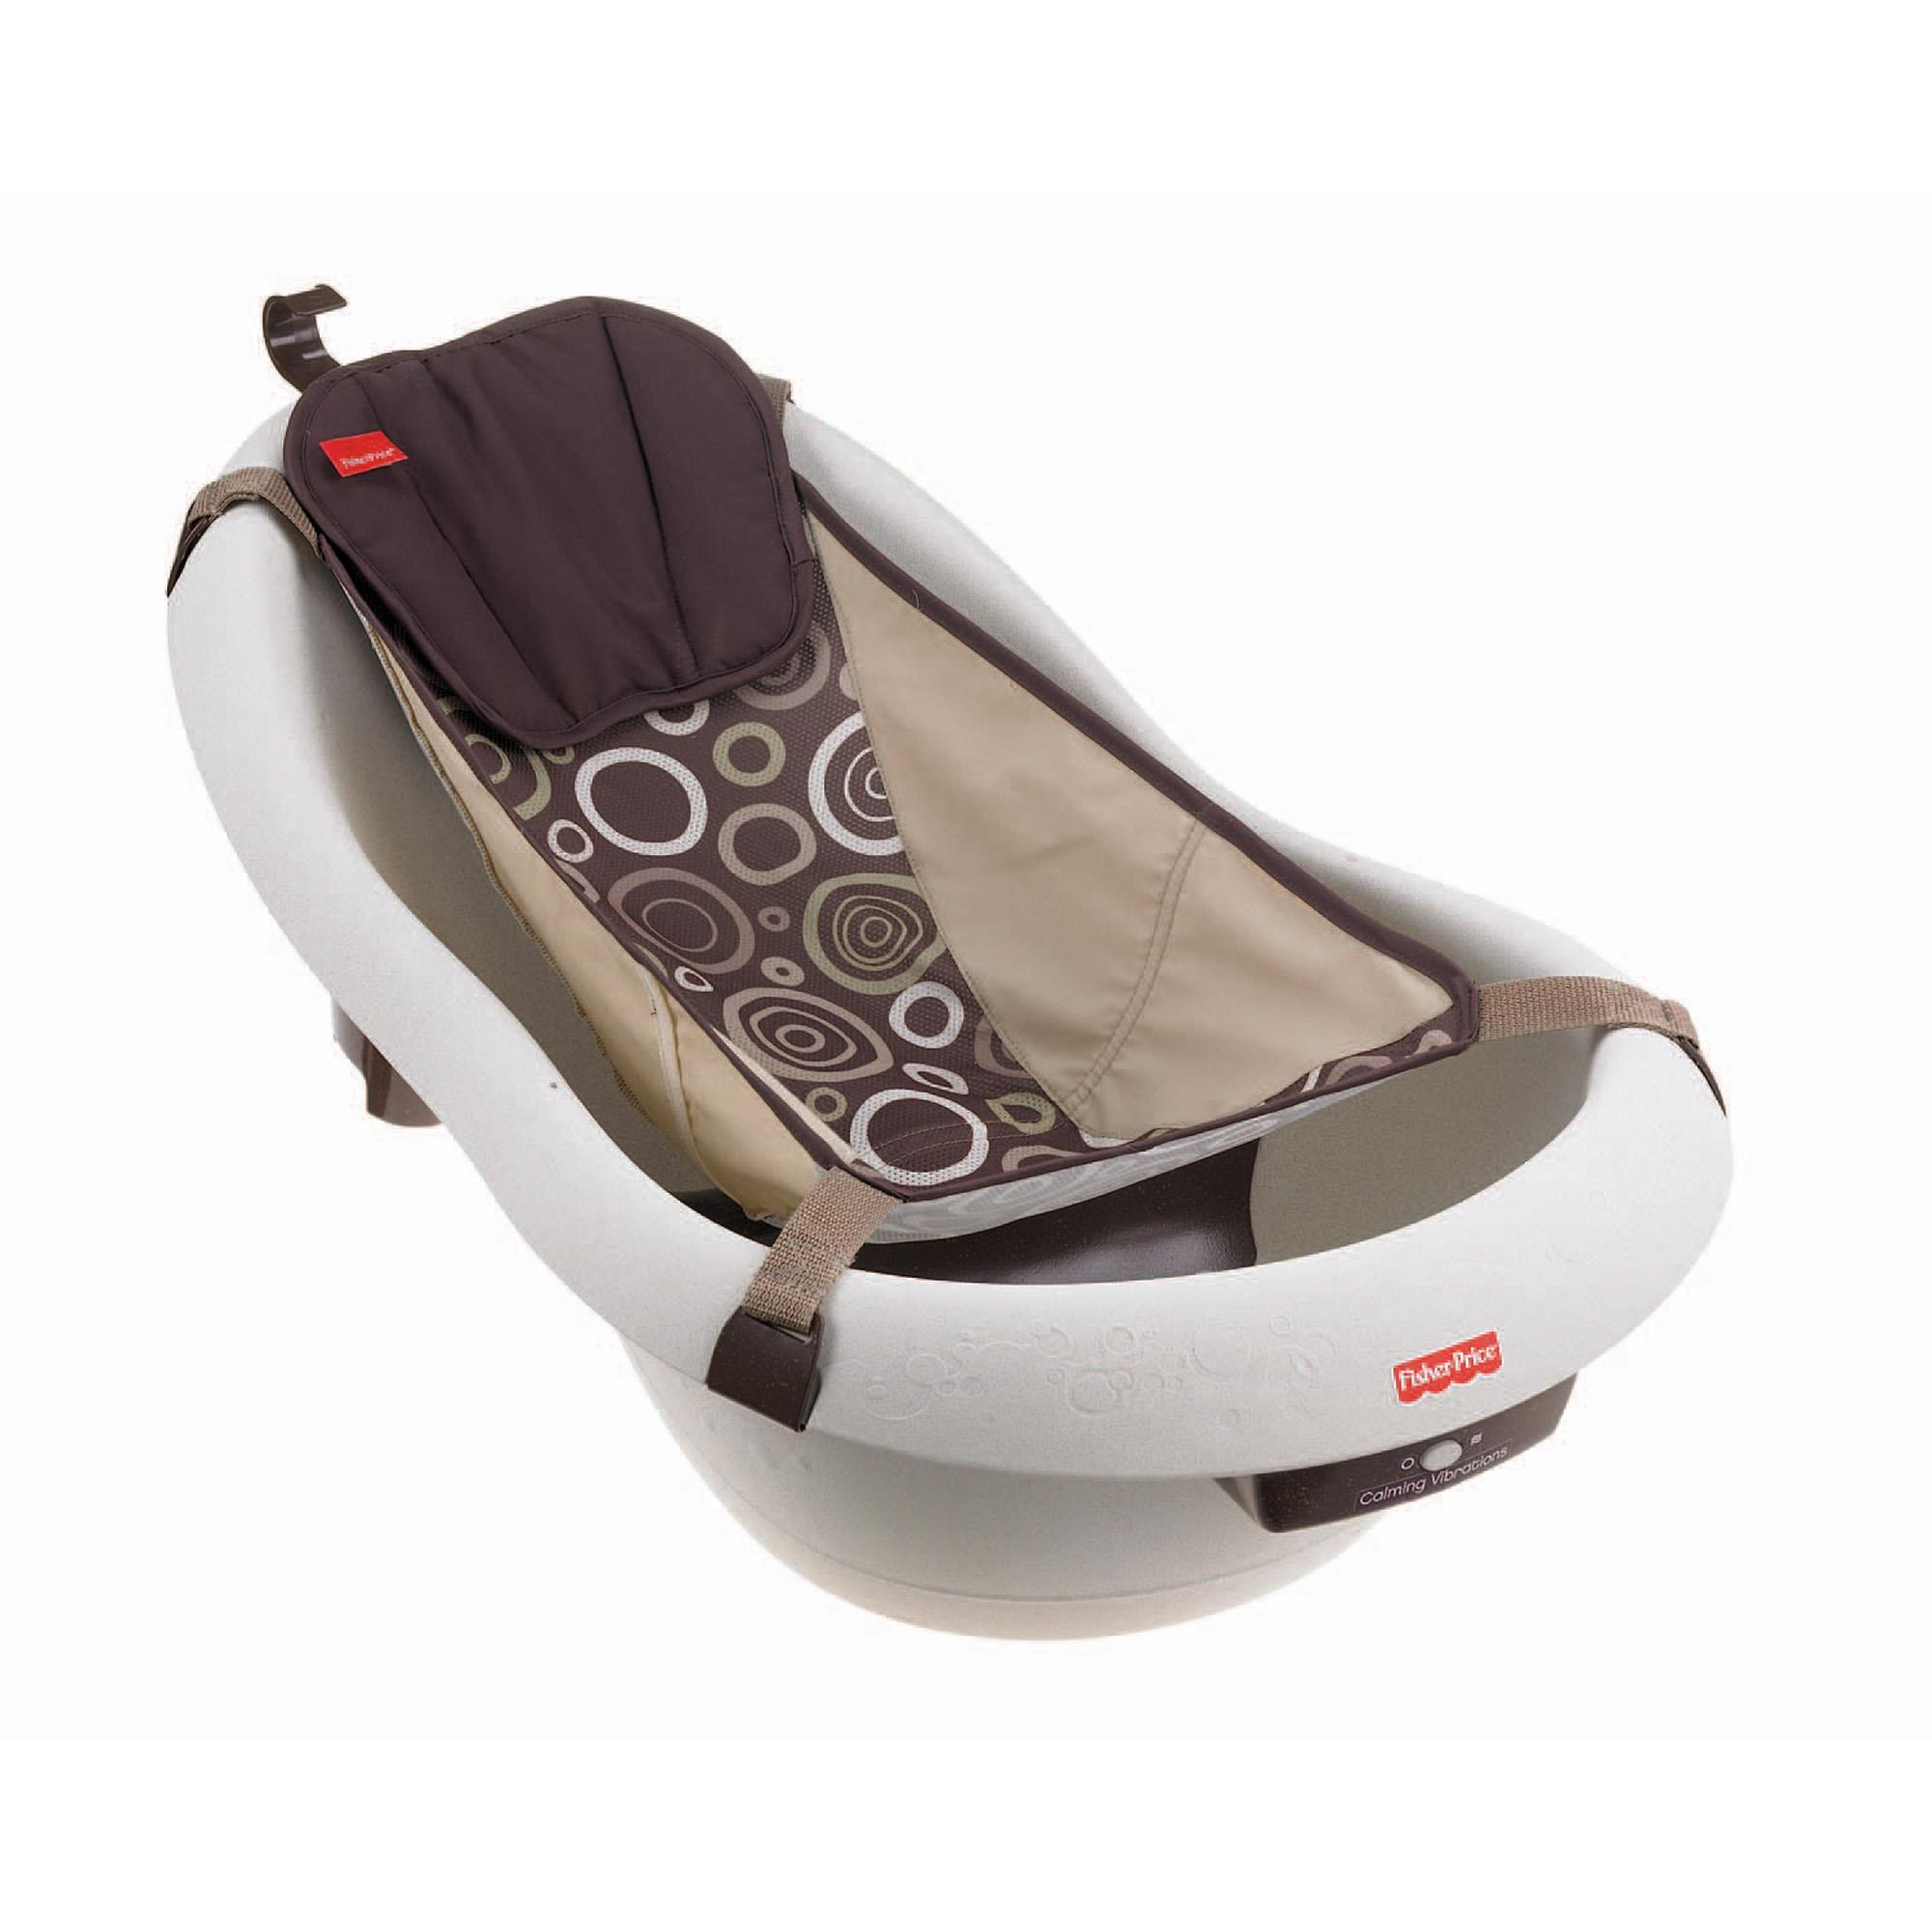 Fisher Price Calming Waters Vibration Tub by Fisher-Price